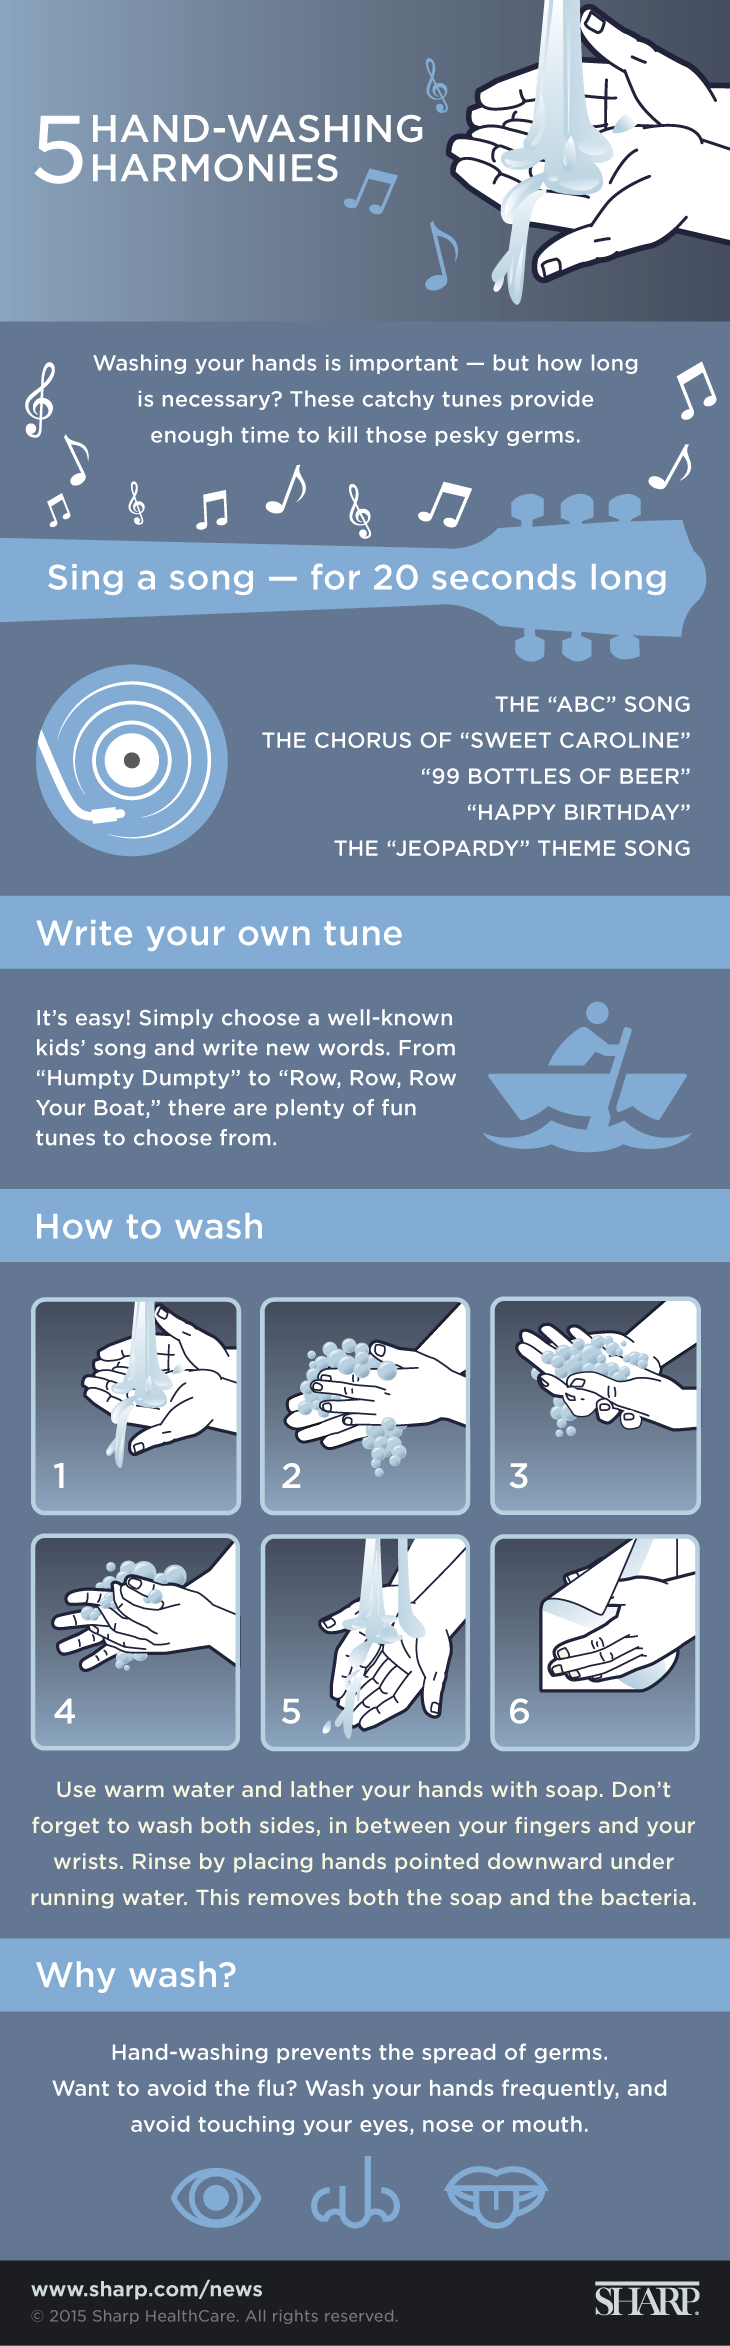 Hand-washing harmonies (infographic). 5 hand-washing harmonies. Washing your hands is important – but how long is necessary? These catchy tunes provide enough time to kill those pesky germs. Sing one of these songs for 20 seconds long — the ABC song, the chorus of Sweet Caroline, 99 Bottles of Beer, Happy Birthday, or the Jeopardy theme song. You could also write your own tune – it's easy! Simply choose a well-known kids' song and write new words. From Humpty Dumpty to Row, Row, Row Your Boat, there are plenty of fun tunes to choose from. Why wash? Handwashing prevents the spread of germs. Want to avoid the flu? Wash your hands frequently, and avoid touching your eyes, nose or mouth. How to wash. Use warm water and lather your hands with soap. Don't forget to wash both sides, in between your fingers and your wrist. Rinse by placing hands pointed downward under running water. This removes both the soap and the bacteria.